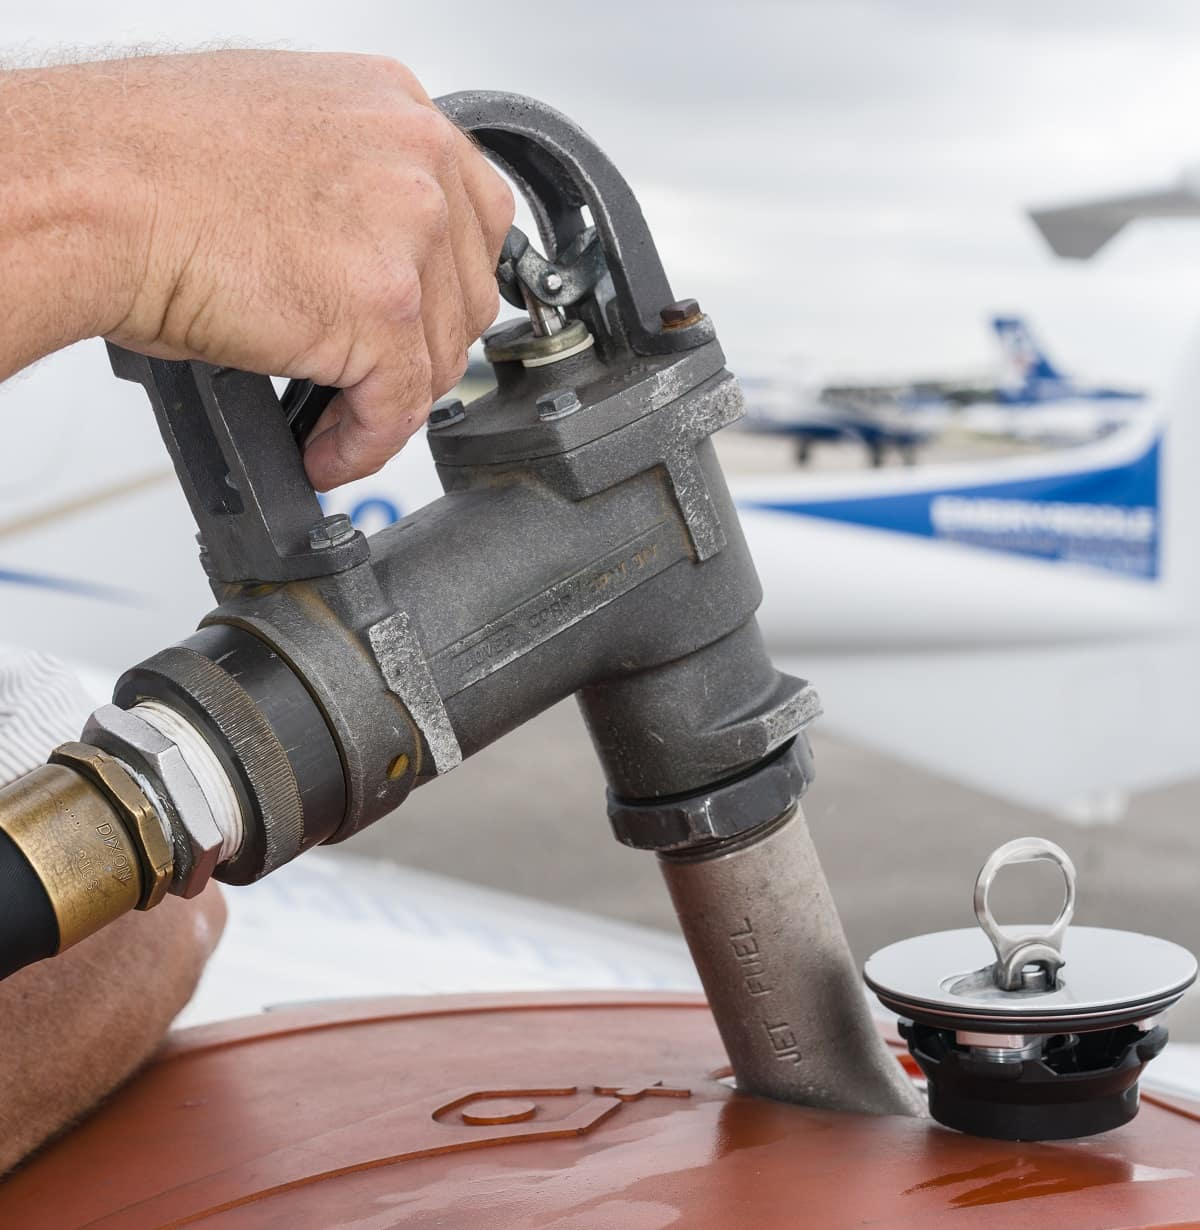 Coming Soon: Revolution in Aviation Fuel for General